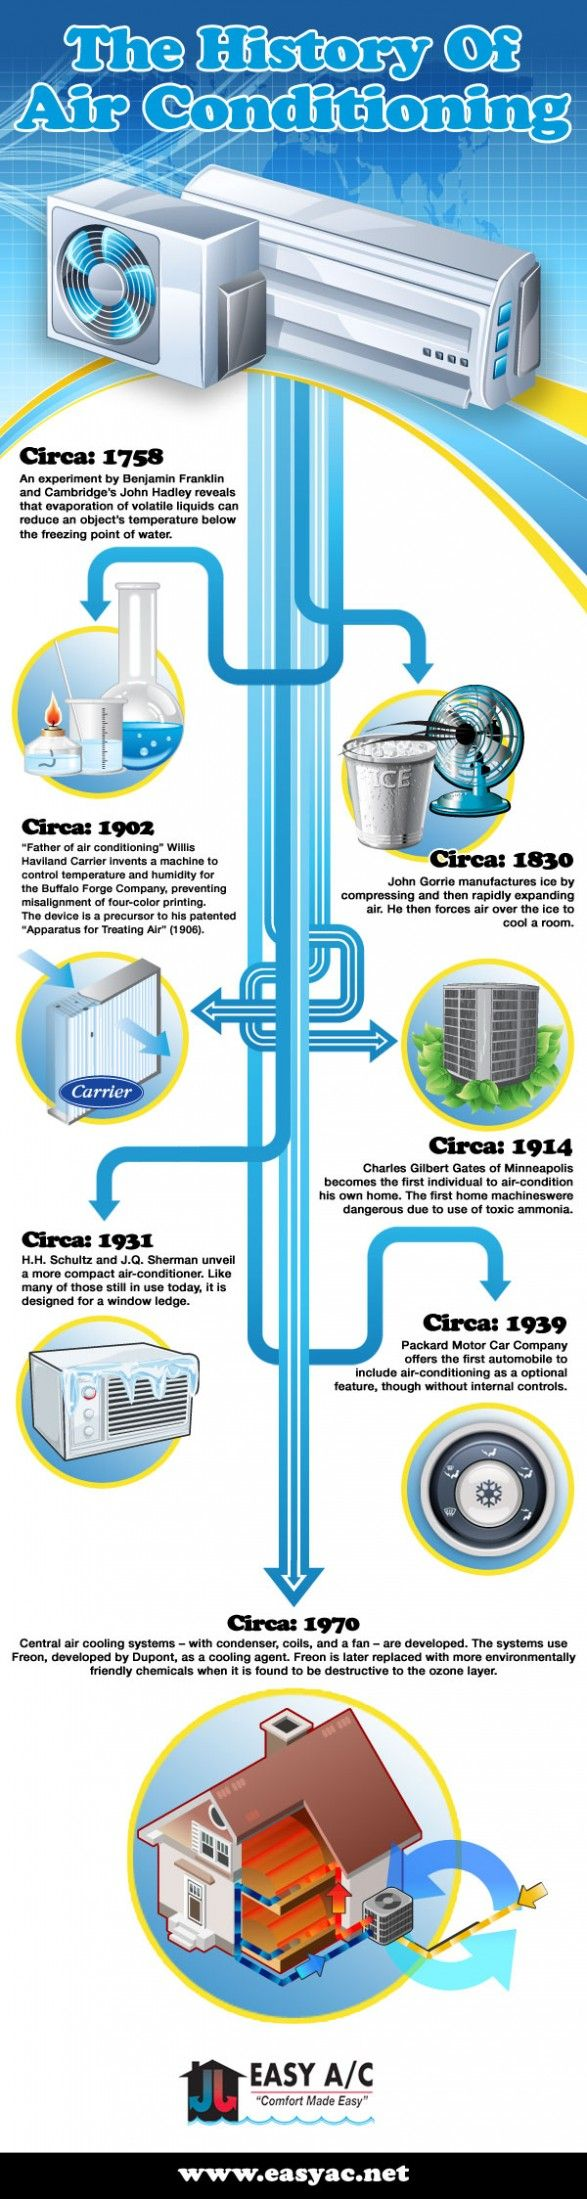 9 best heating and cooling images on Pinterest | Tutorials, Heating ...